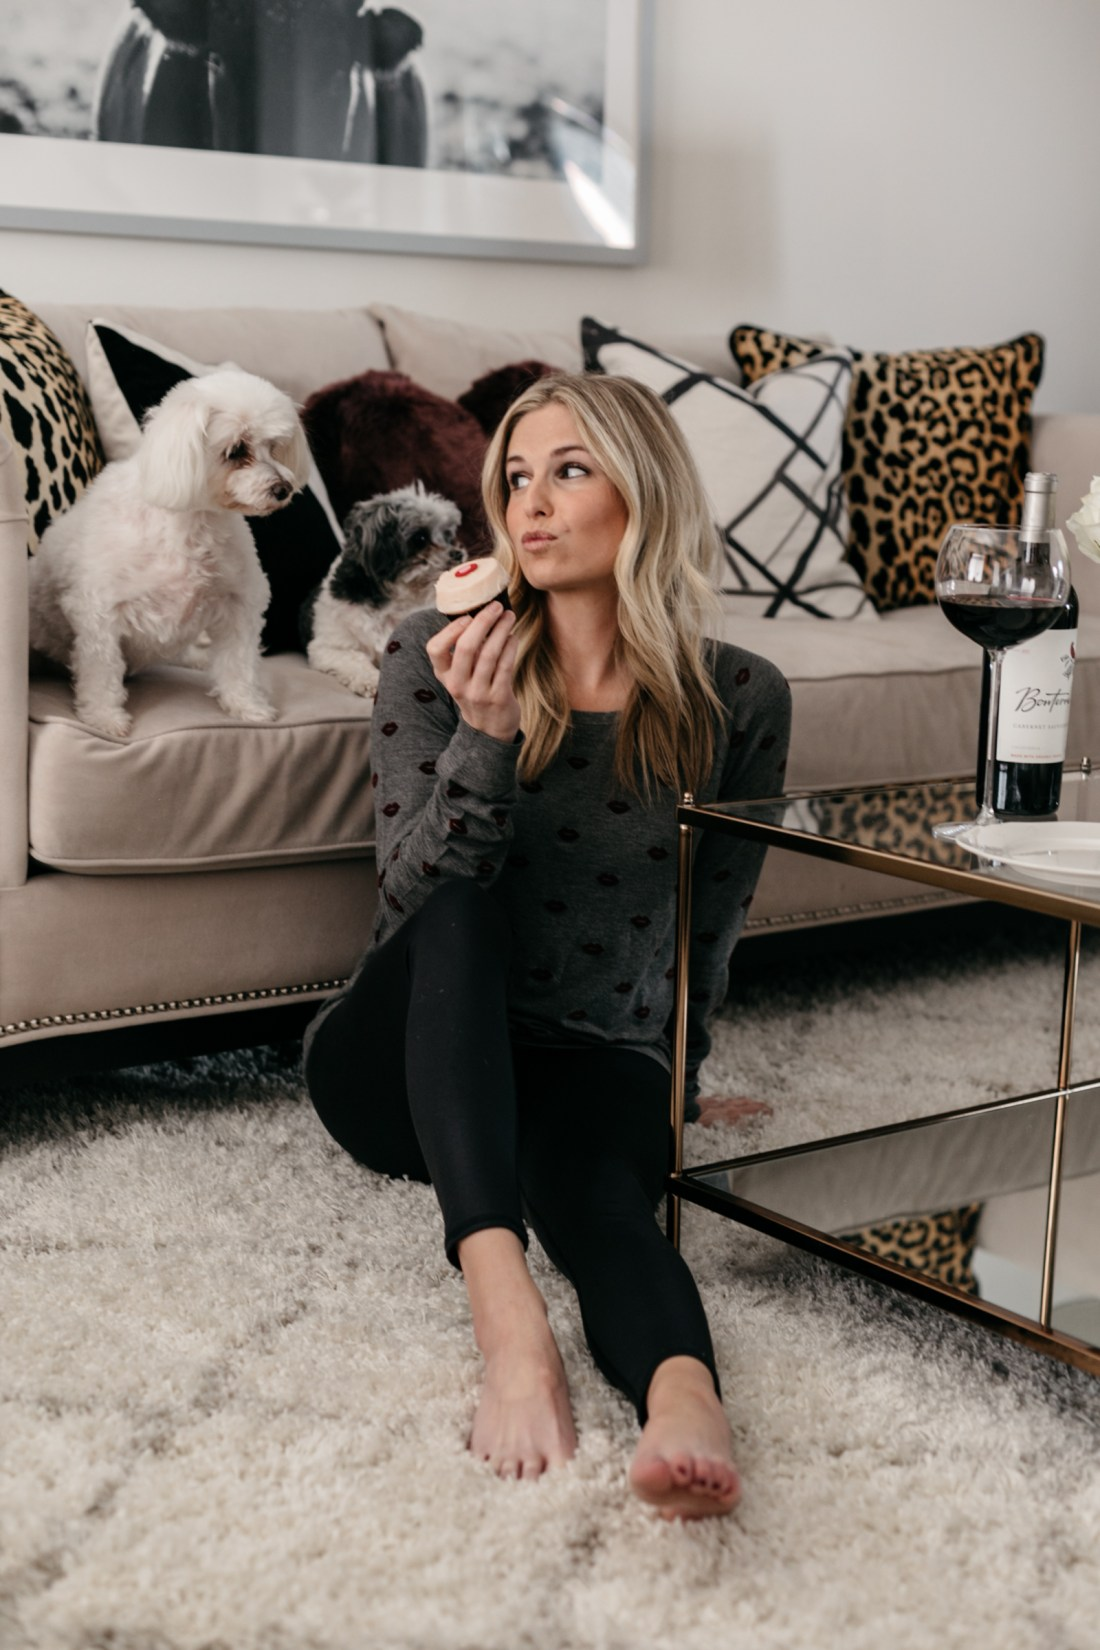 Brooke Burnett with her dogs eating cupcake and drinking wine